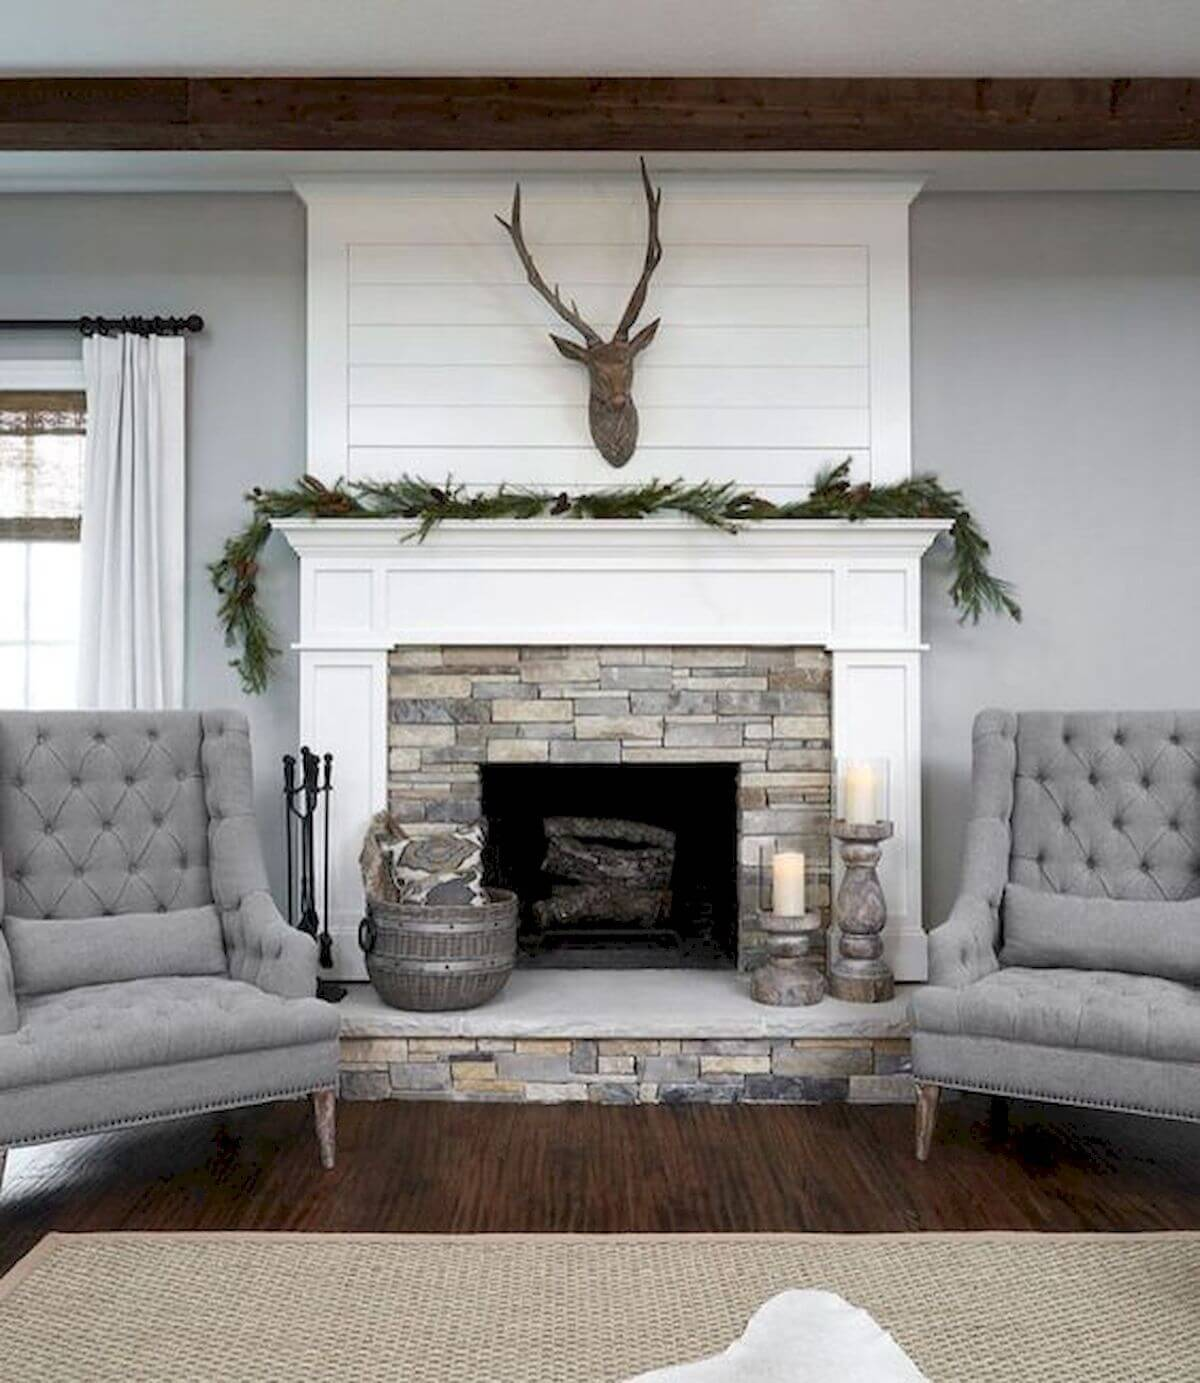 Antler on the mantel